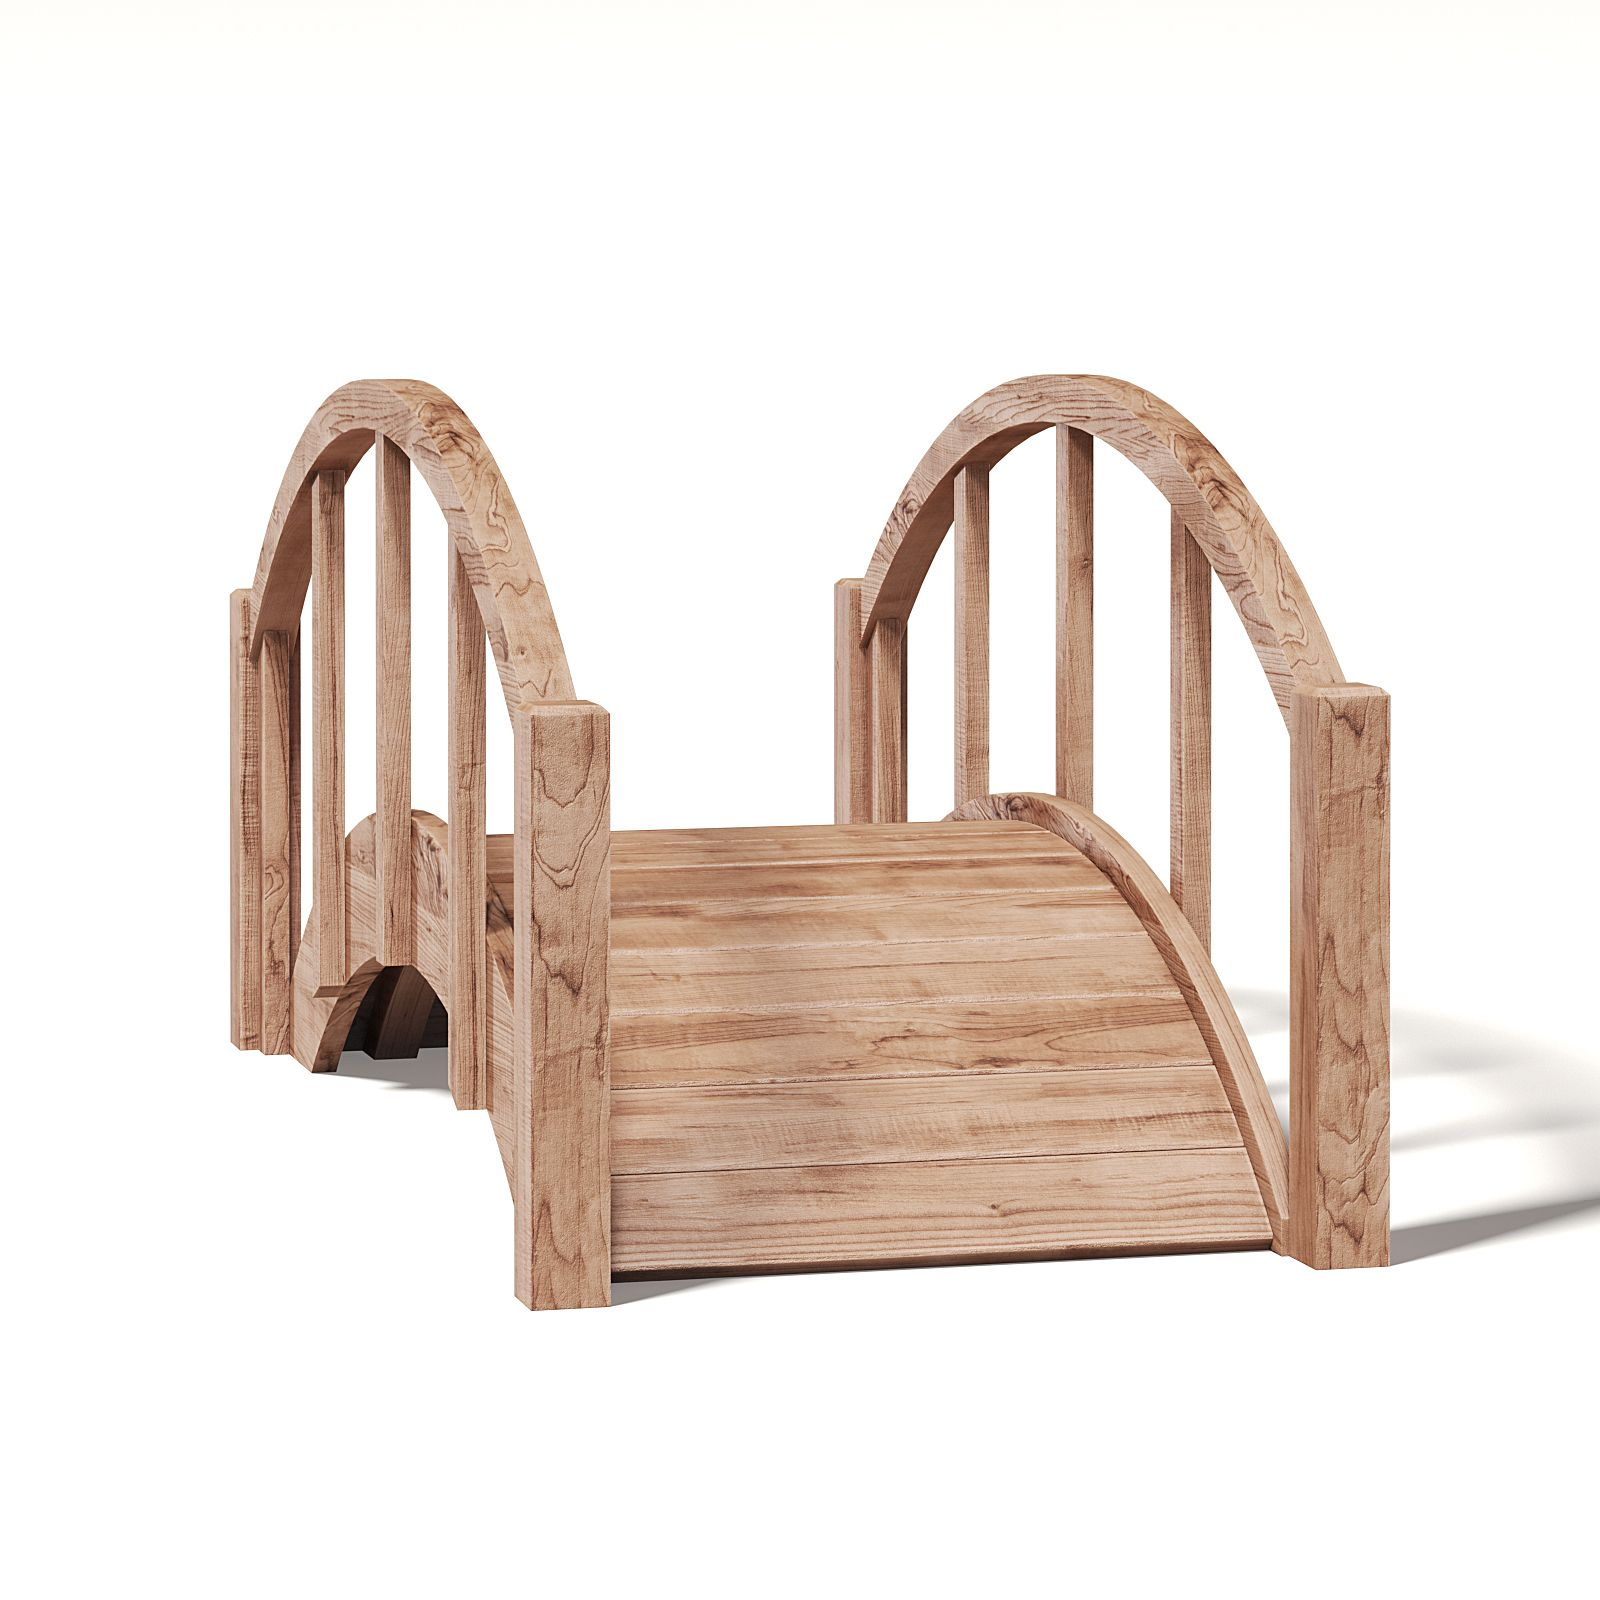 Small Wooden Bridge 3d Model Wooden Bridge Wooden 3d Model